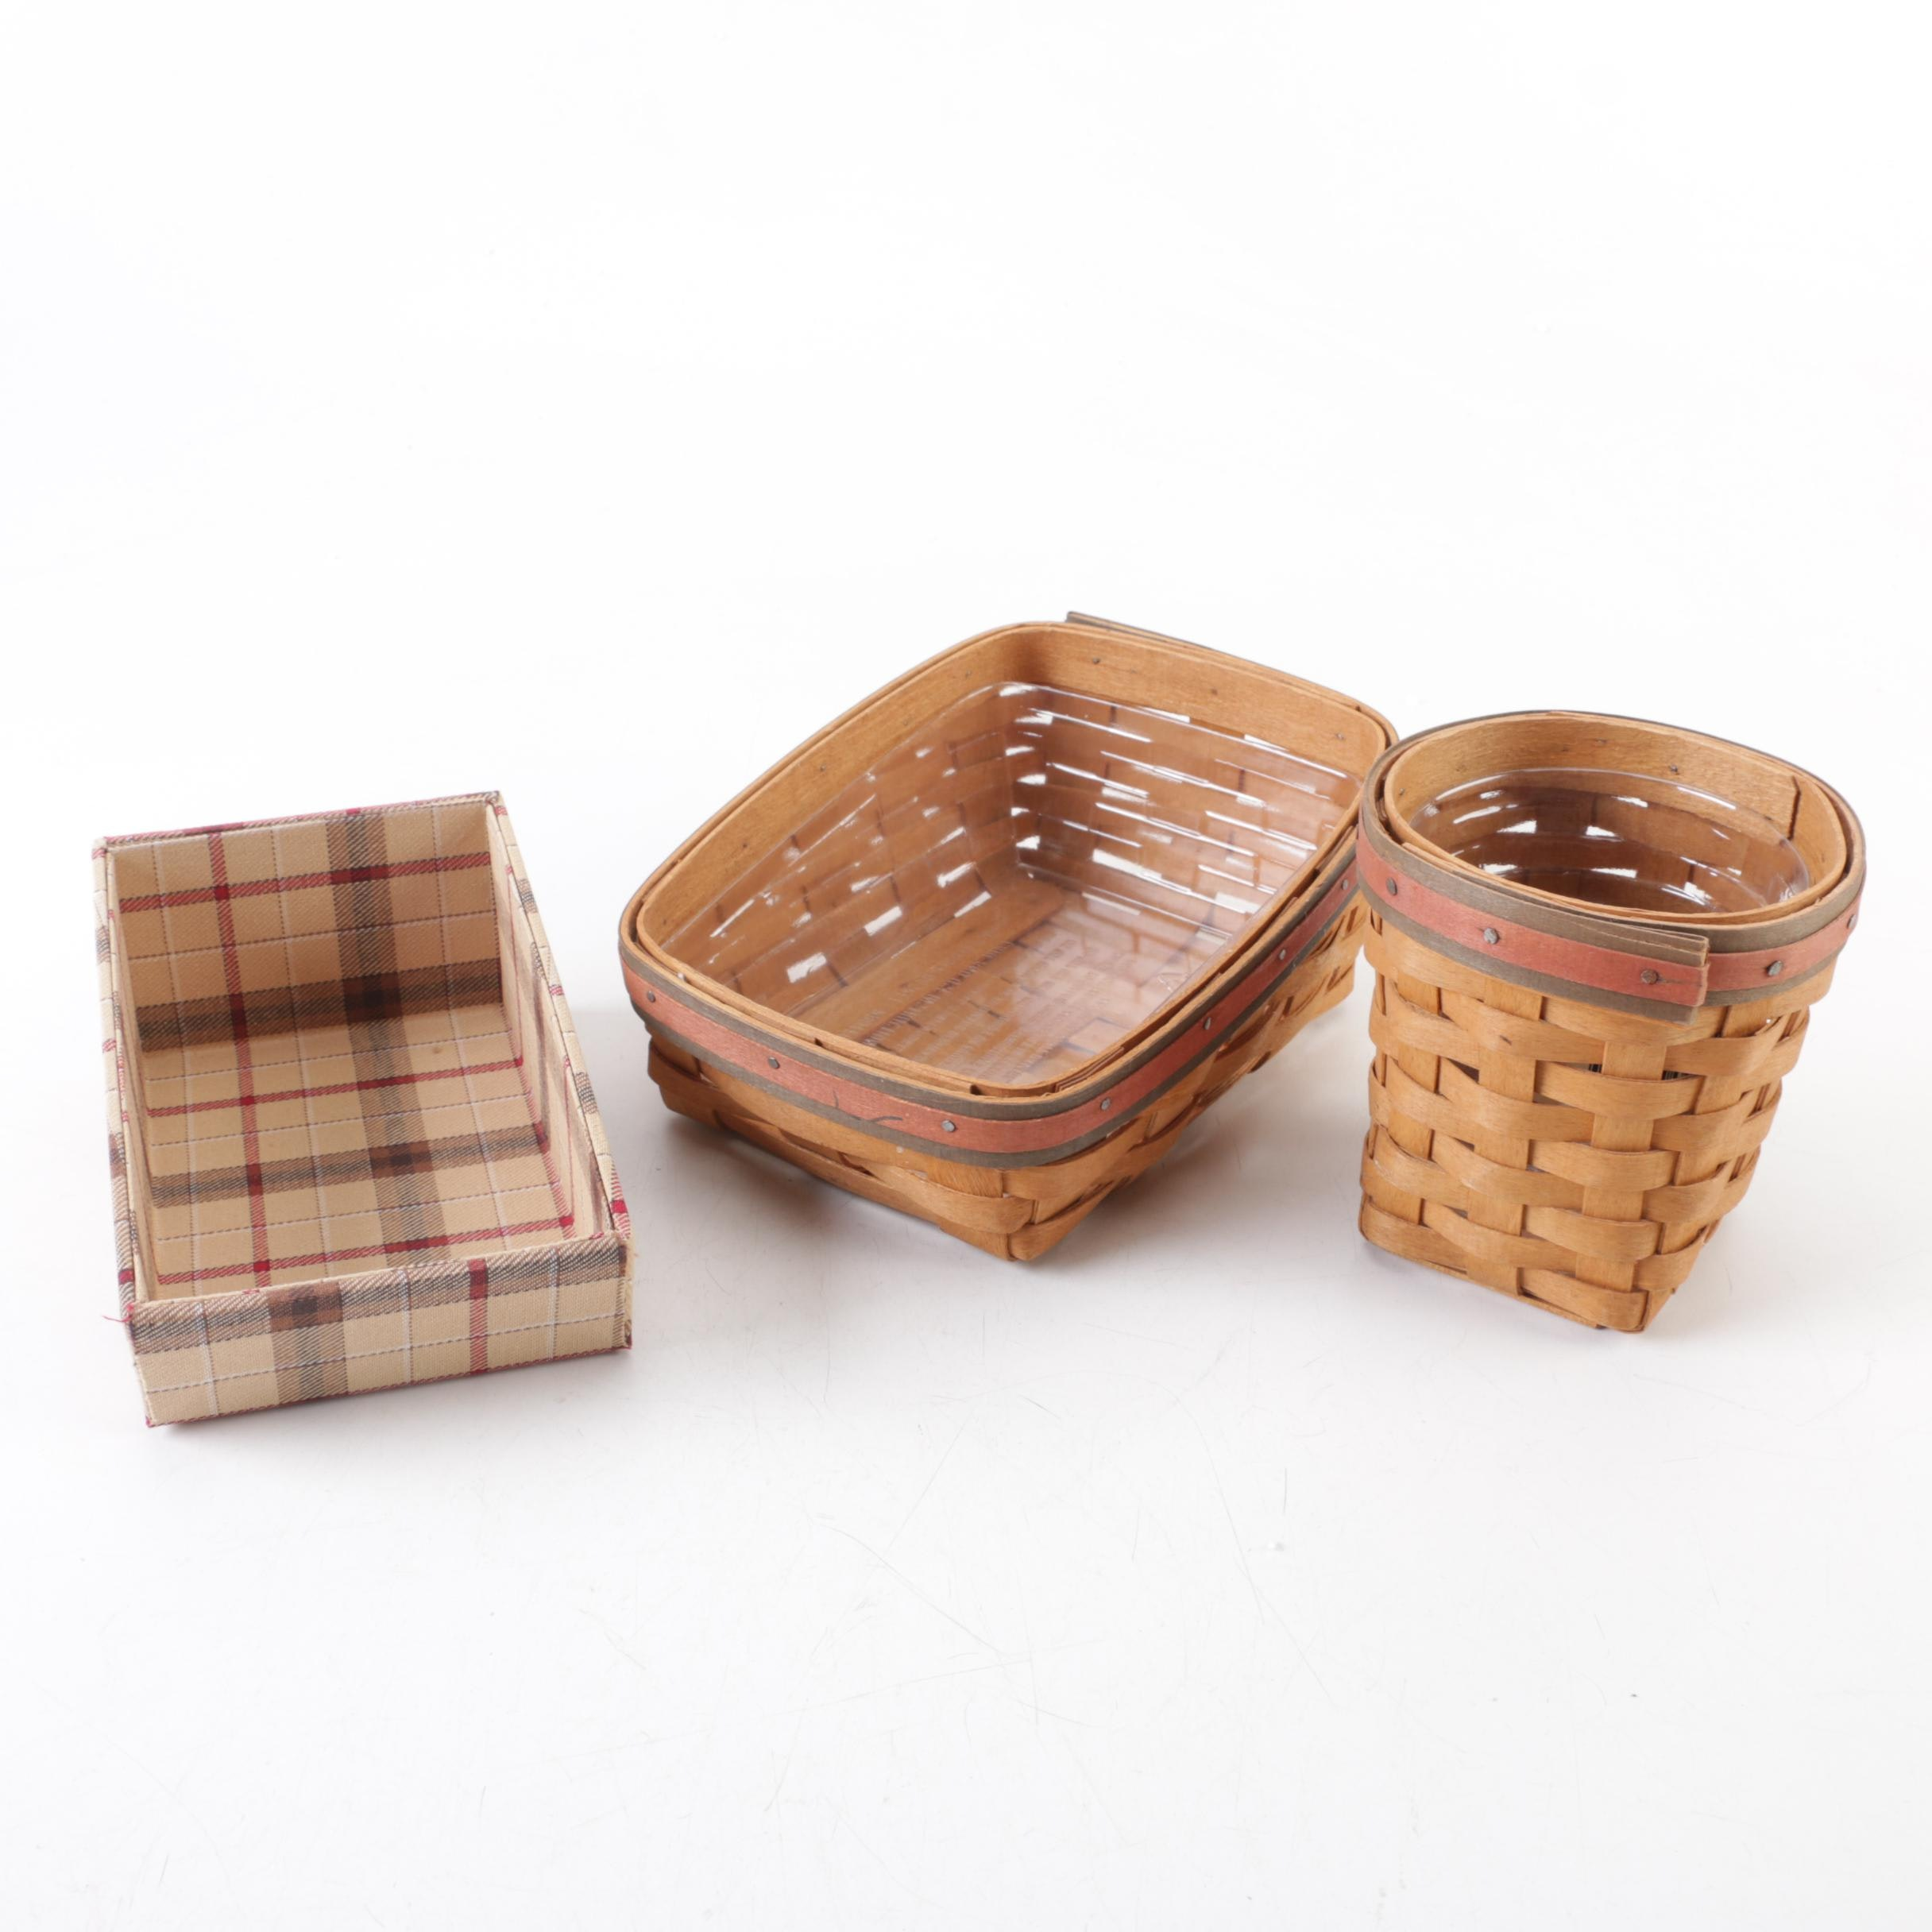 Longeberger Woven Cotton and Wood Baskets